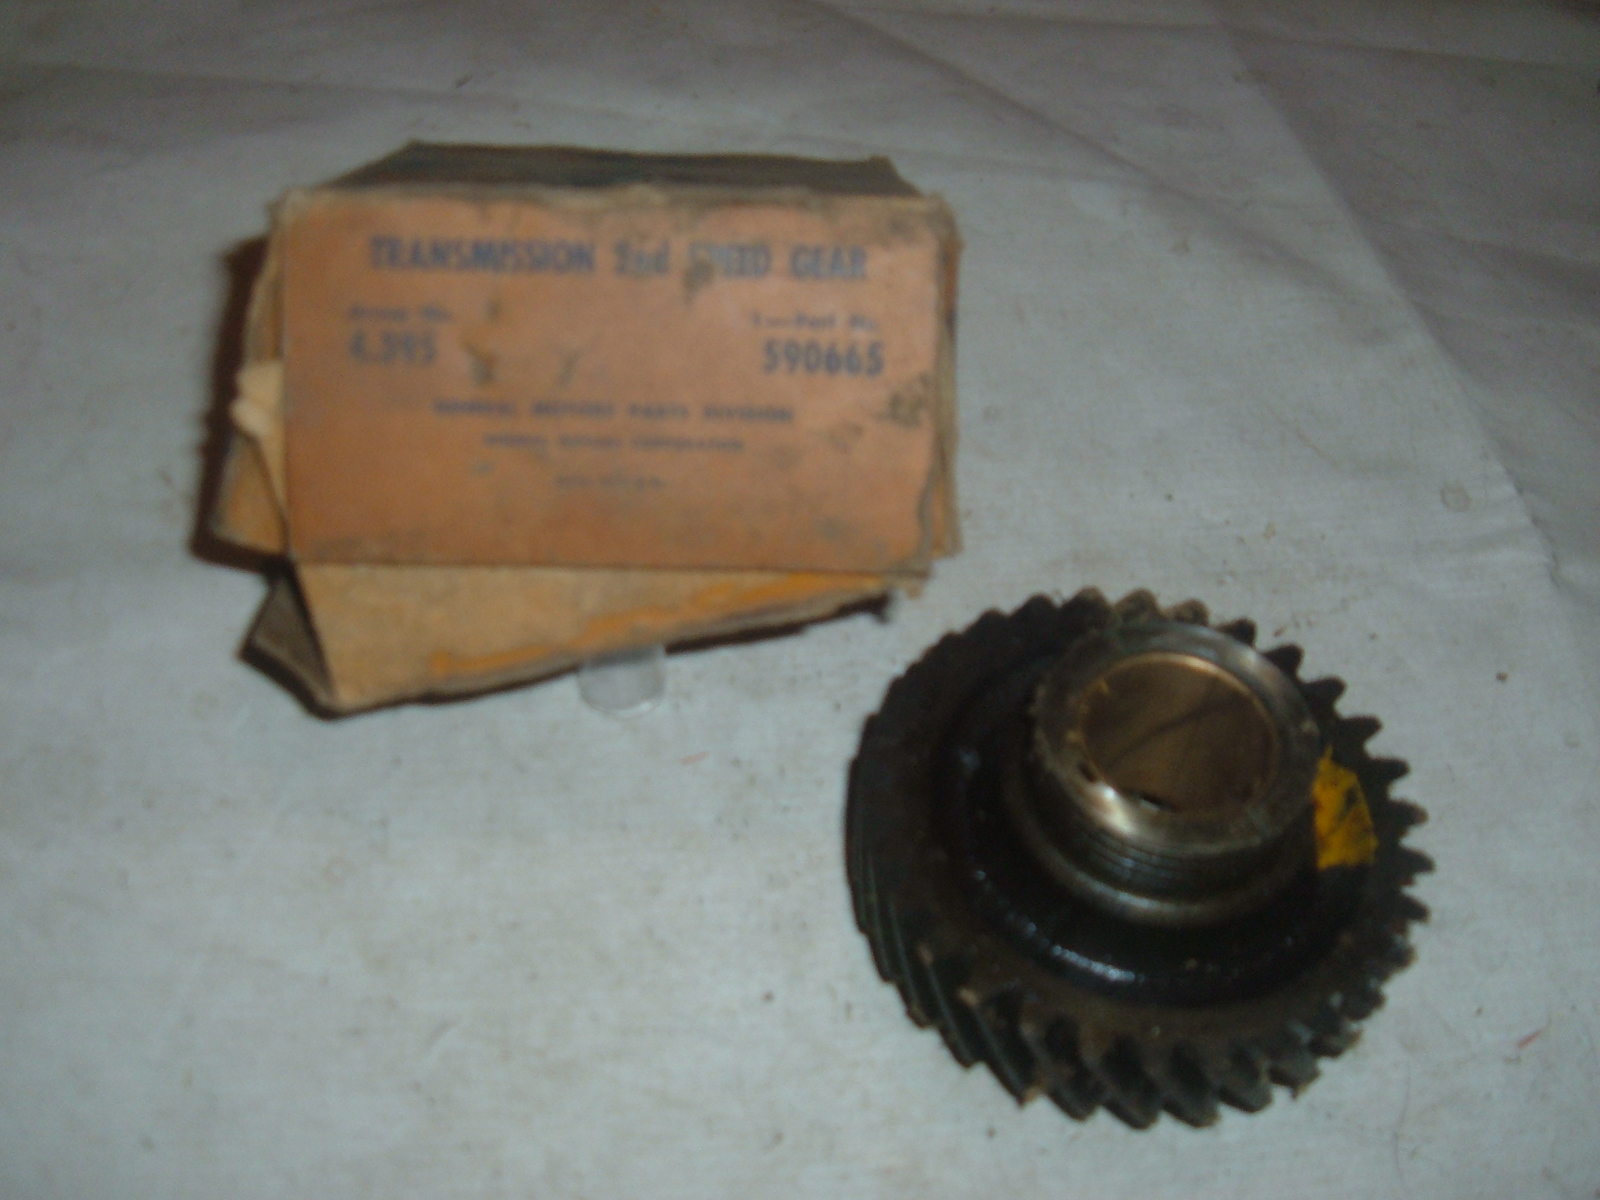 All 1954 Older Chevrolet Master Switches For 1933 1936 34 35 36 2nd Gear Transmission Nos Gm 590665 Z